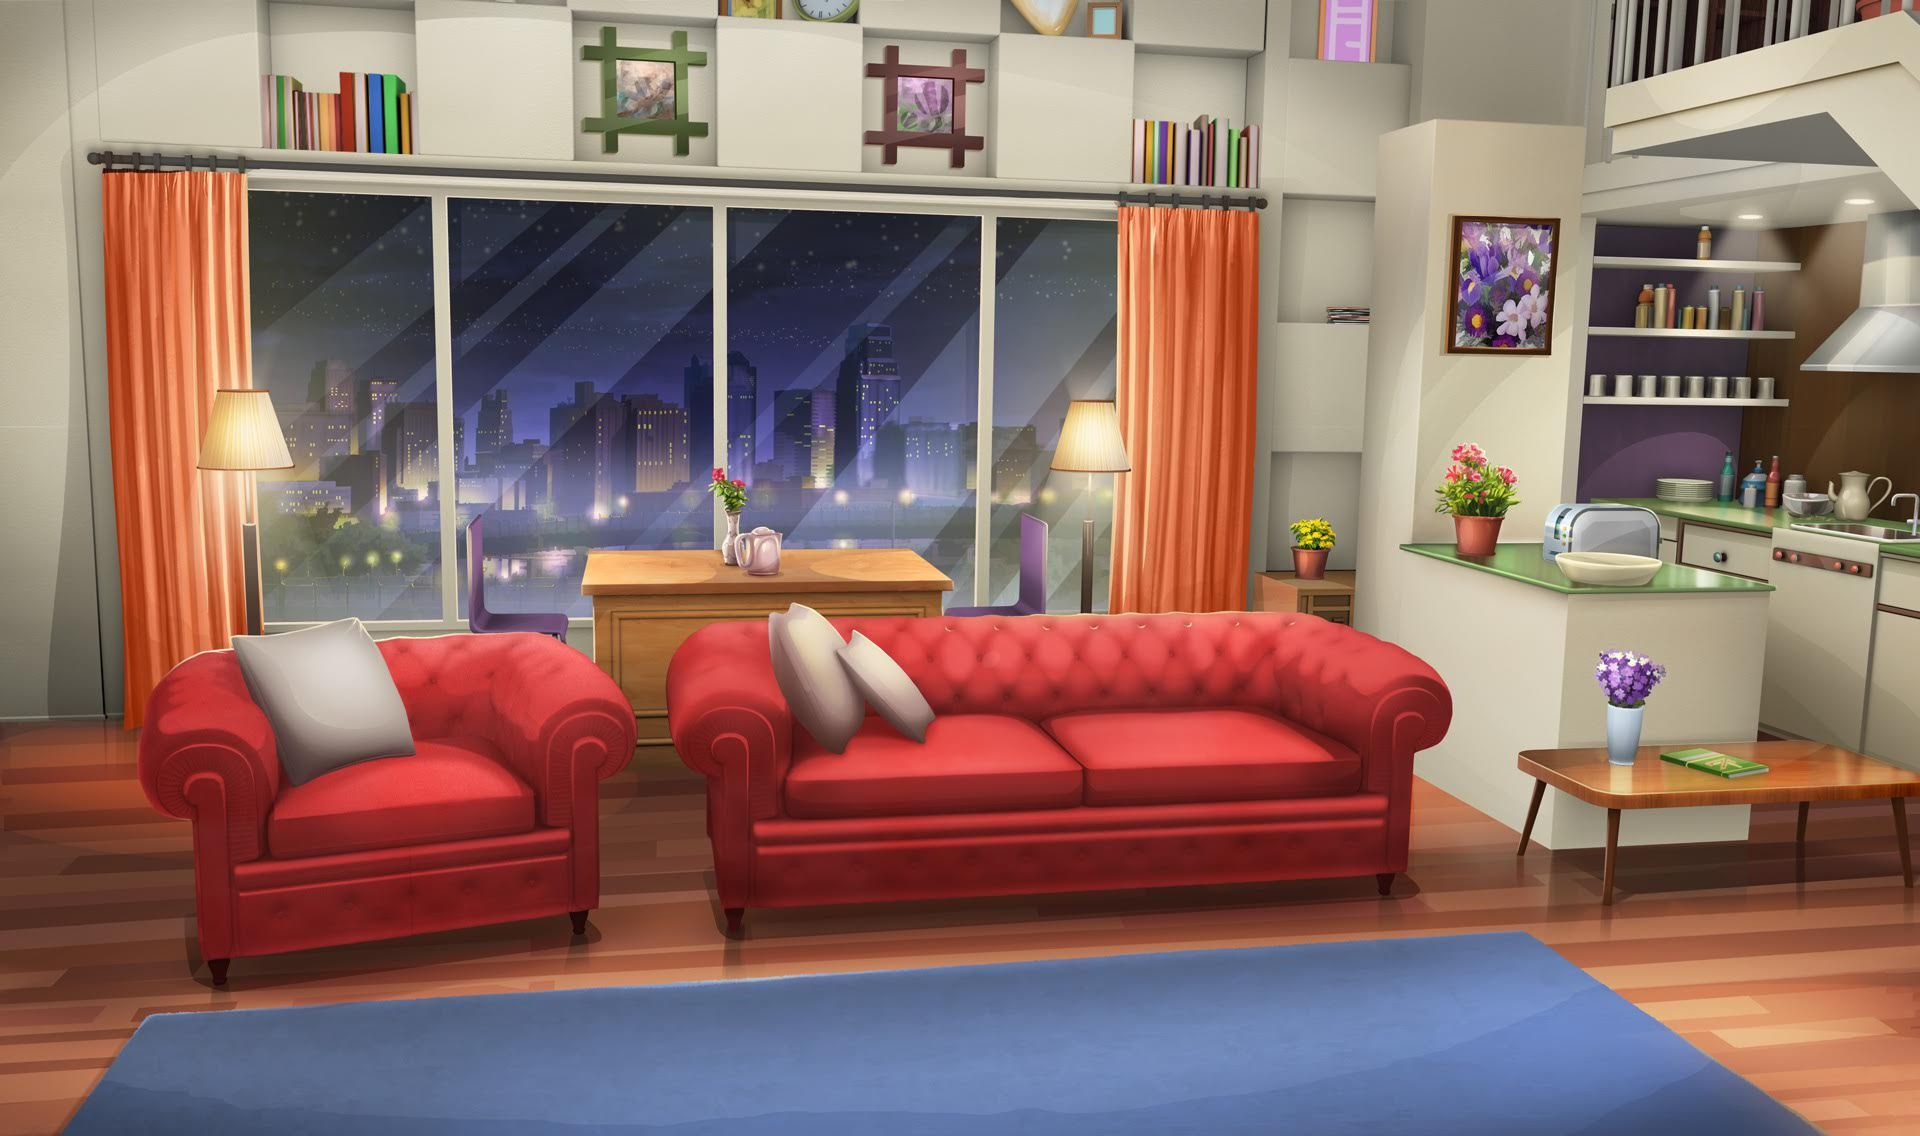 Int Fancy Apartment Living Room Night Cenario Anime Desenho